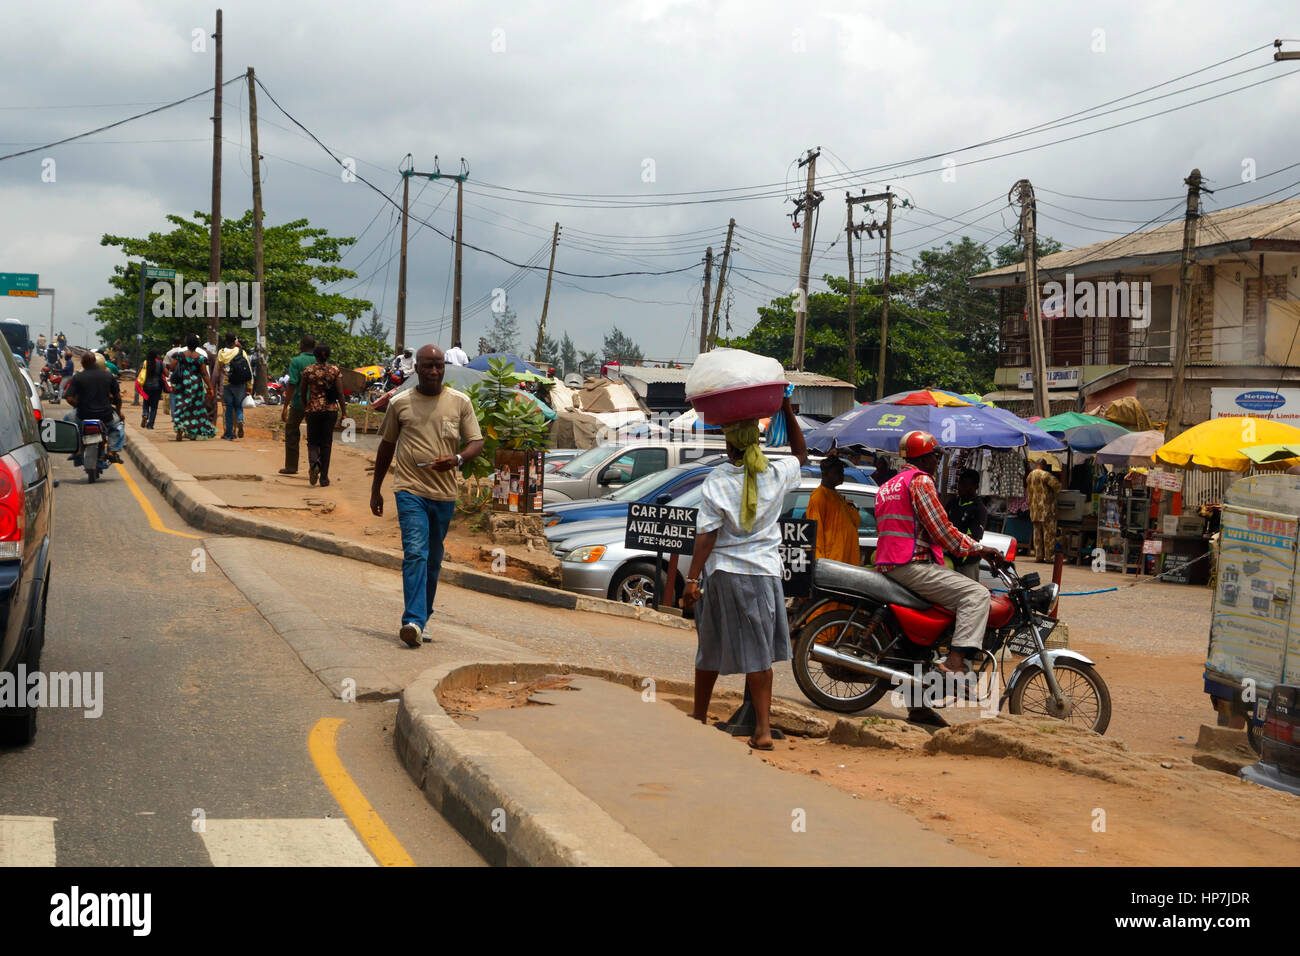 LAGOS, NIGERIA - MAY 11, 2012: People in the street in the city view of Lagos, the largest city in Nigeria and the - Stock Image